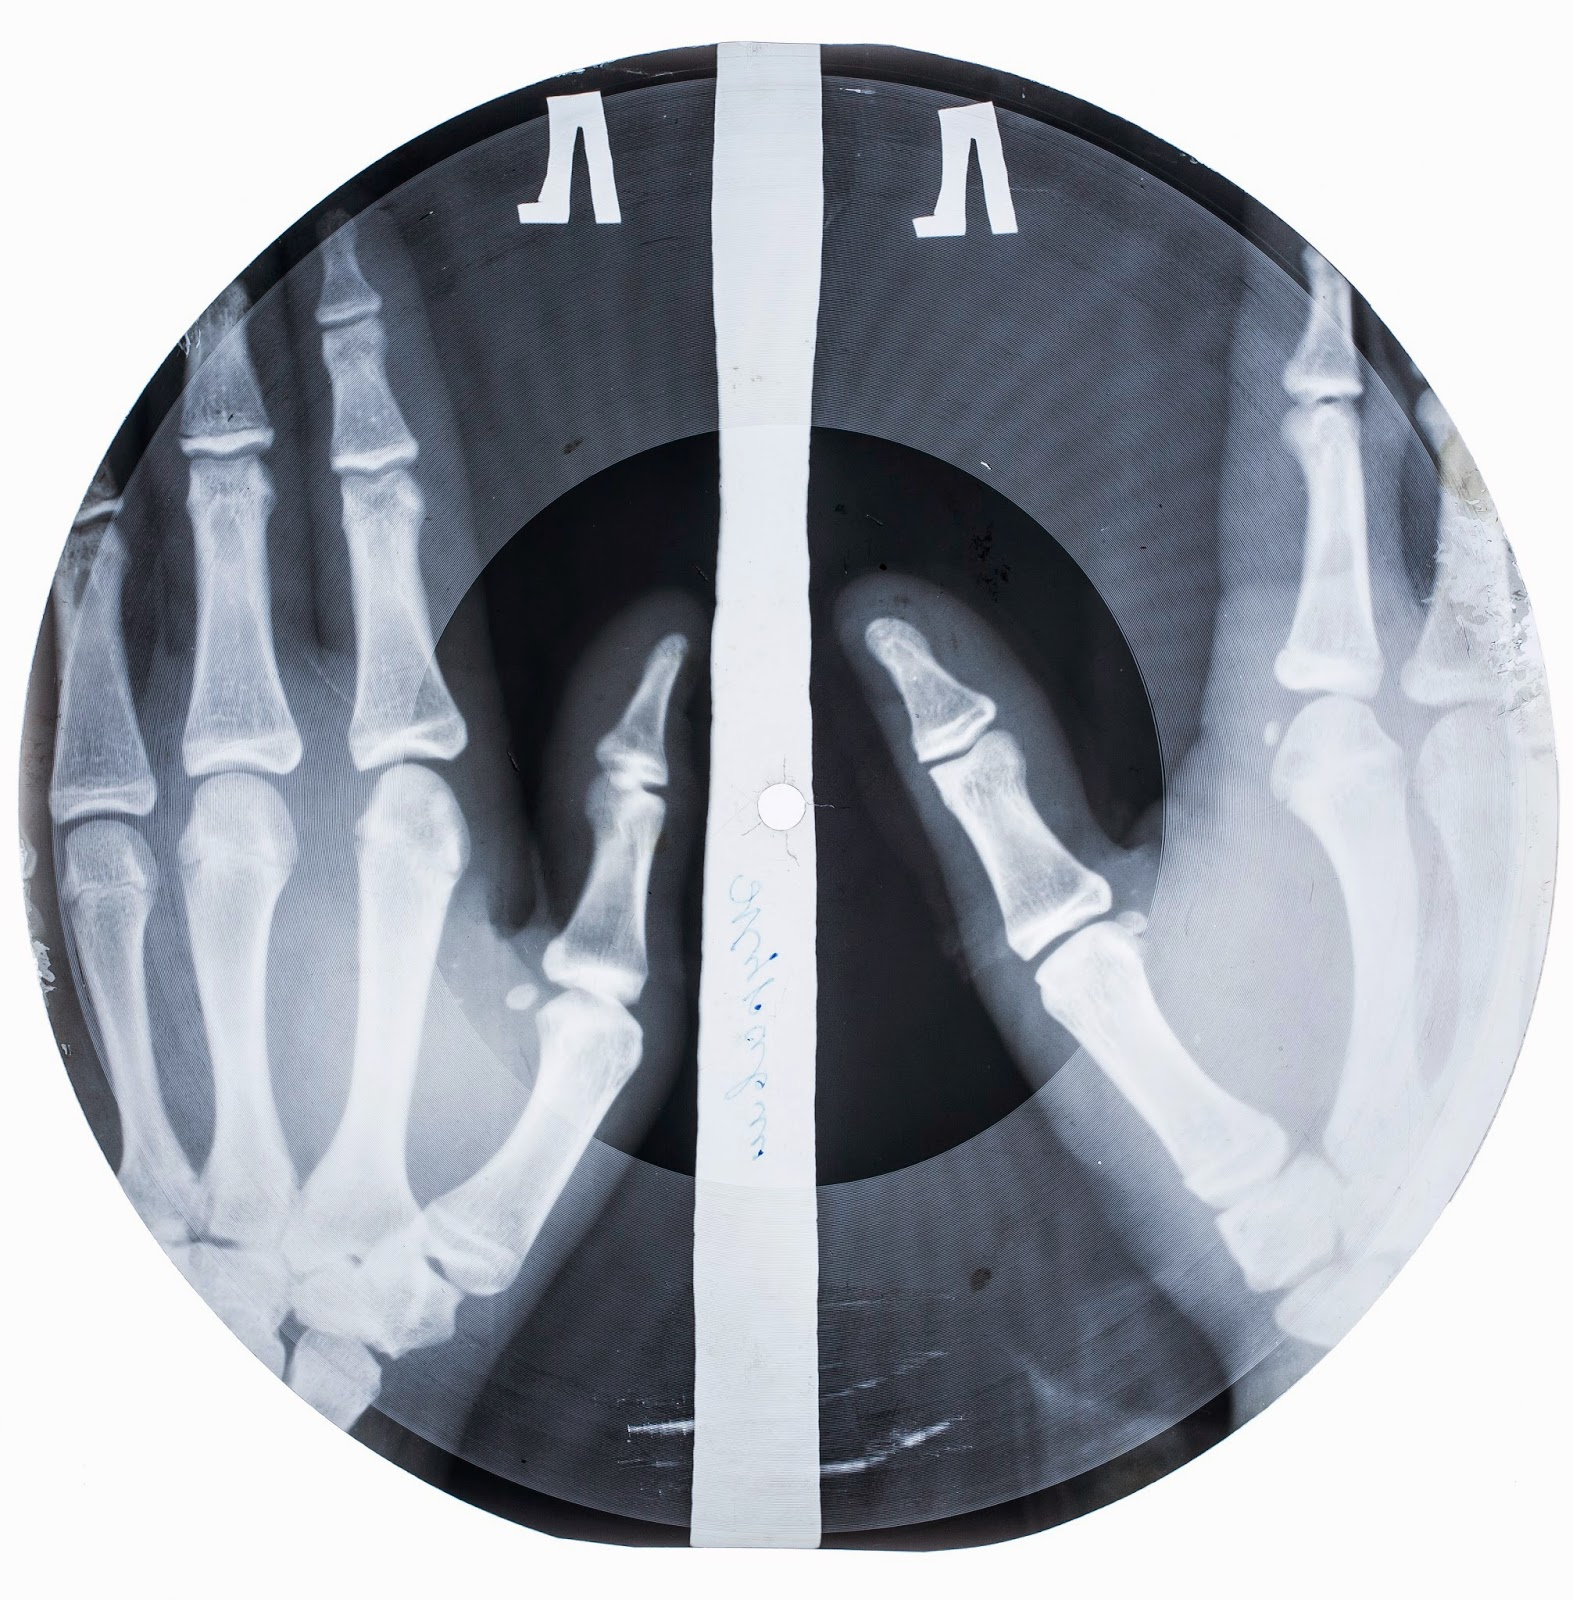 An X-Ray record, from Work and Play Behind the Iron Curtain